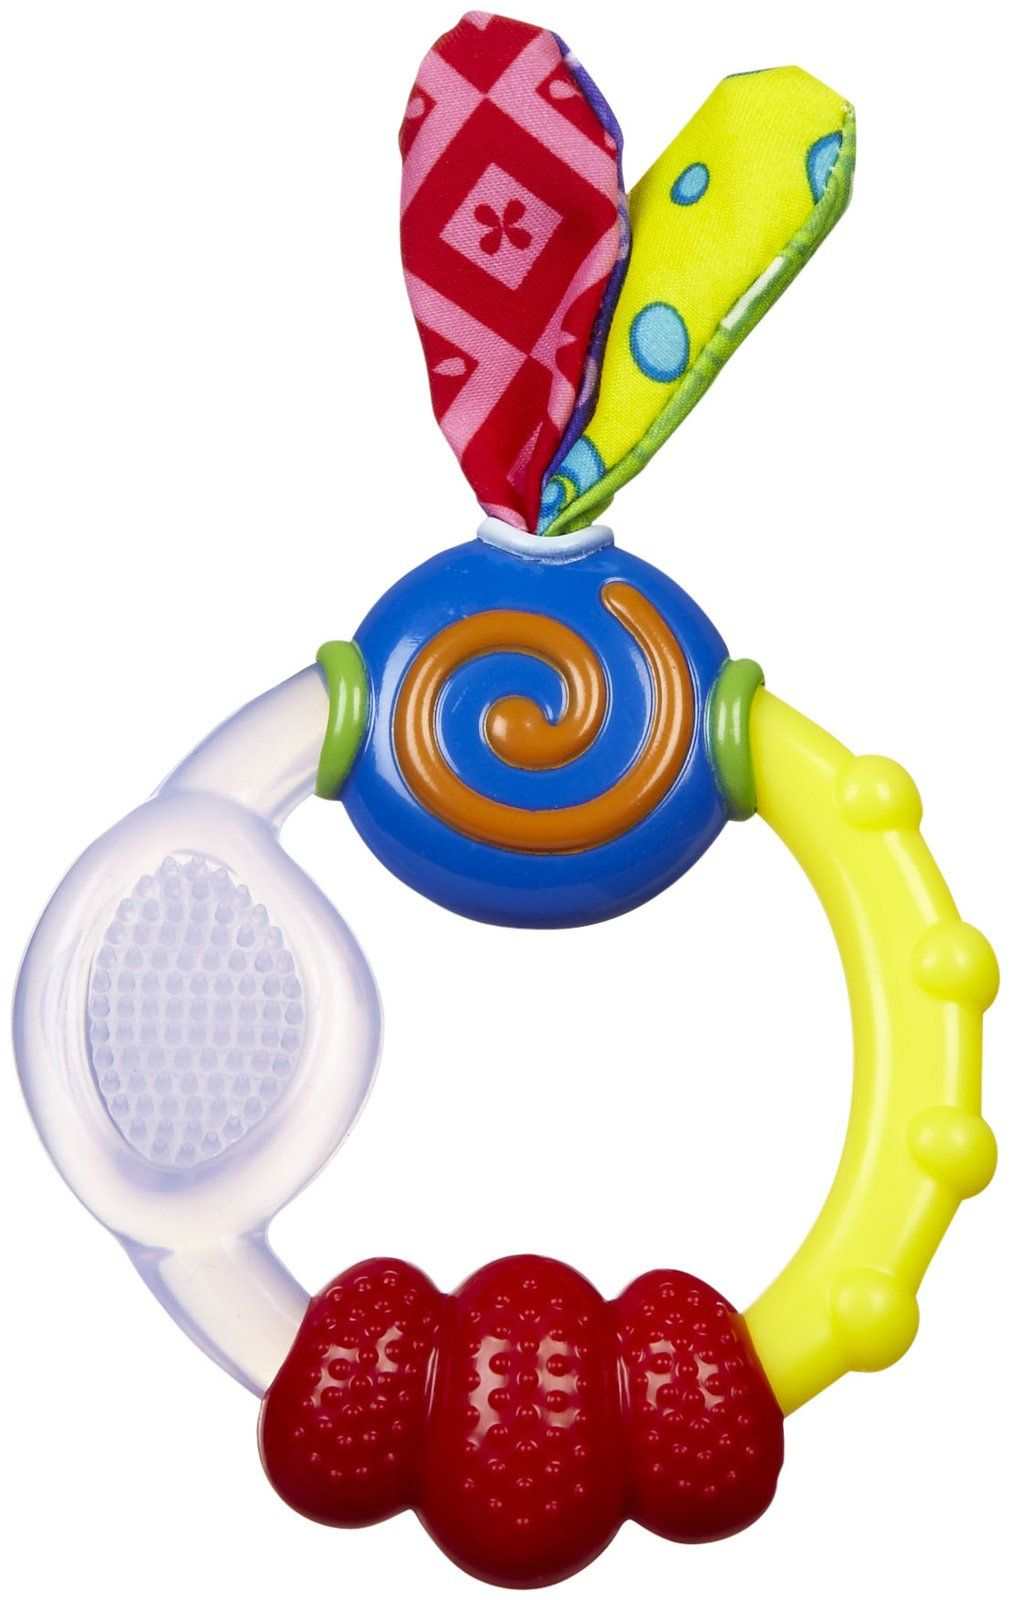 Nuby Wacky Teething Ring Been There Tried That Pinterest Rings Stainless Mug With Lid 240 Ml Blue Monkey